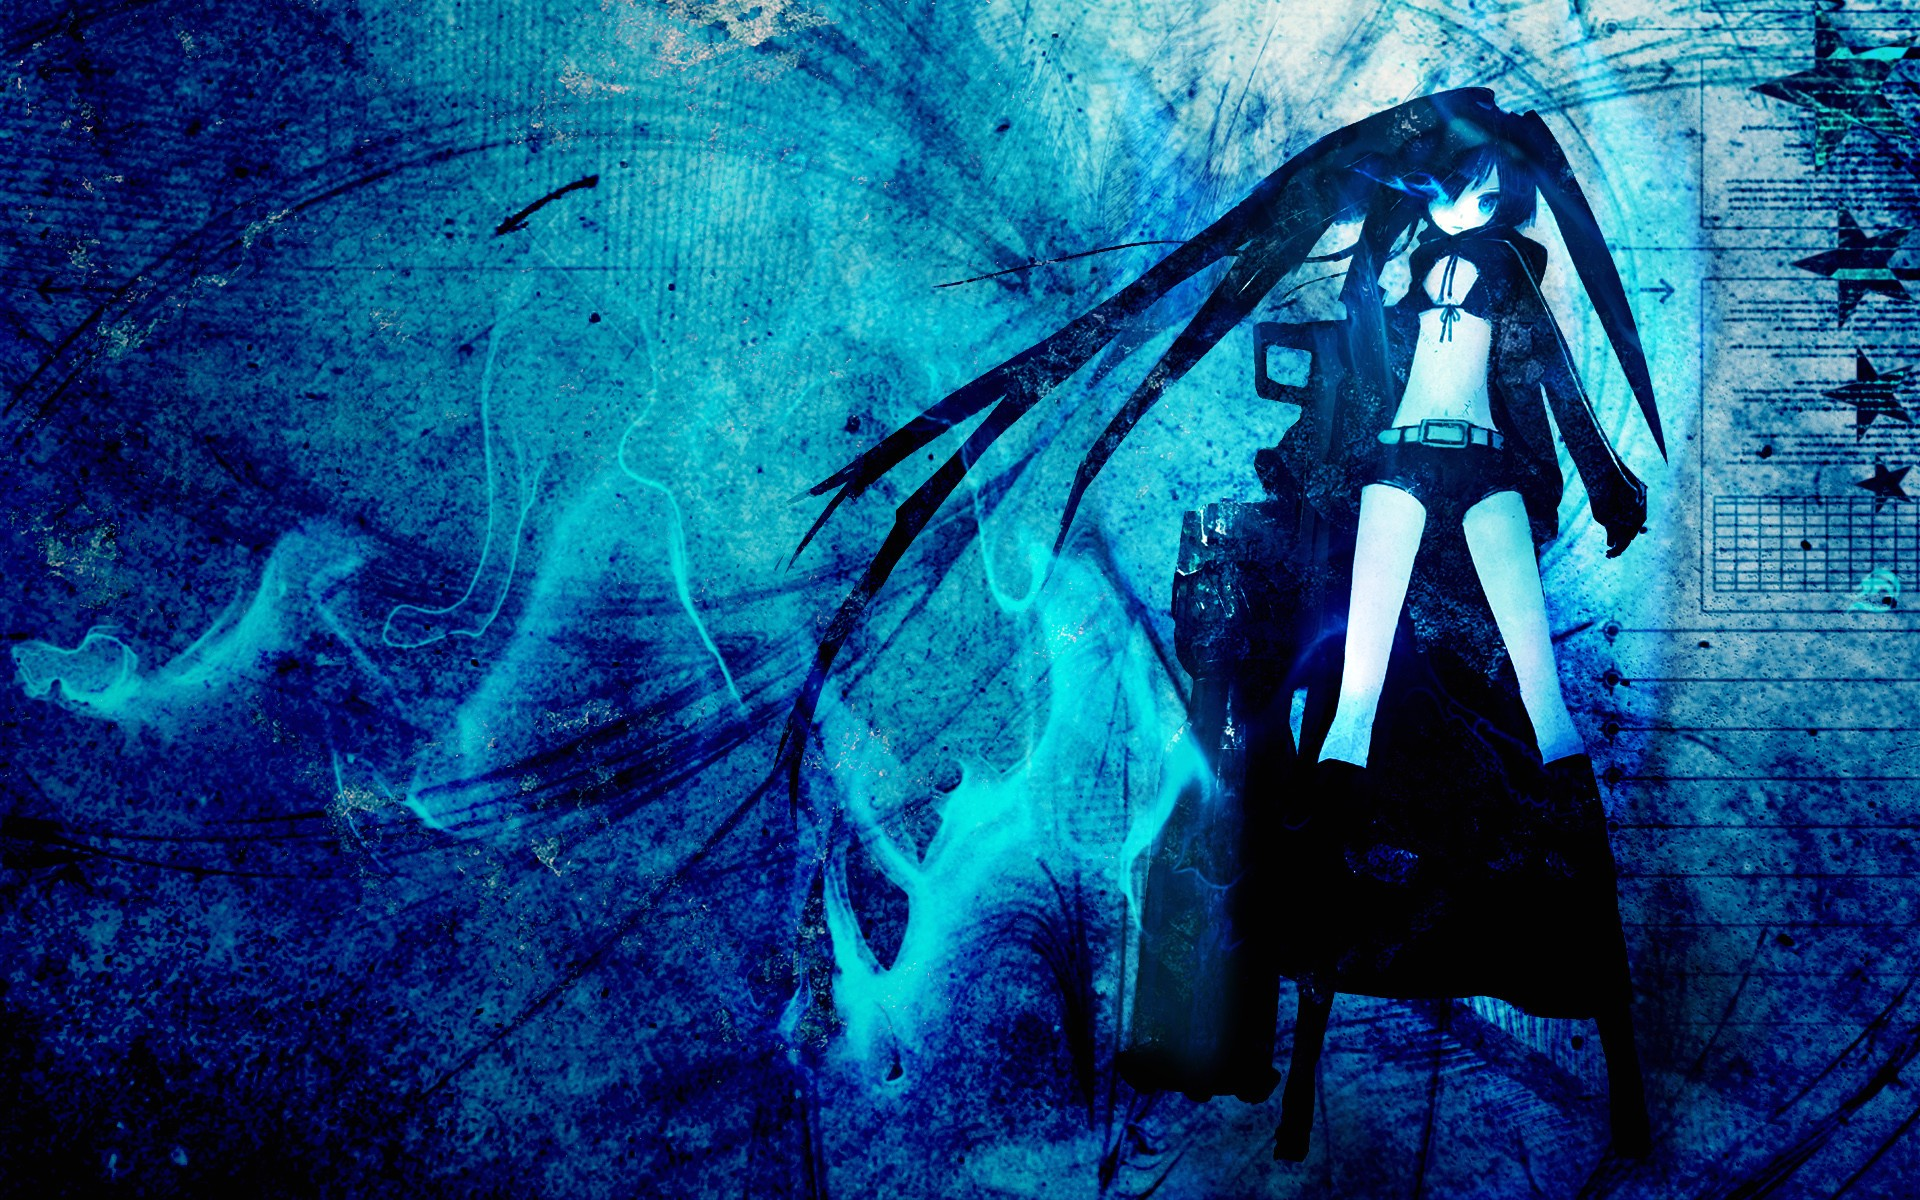 Anime Wallpapers Hd 4k Download For Mobile Iphone Pc Black Rock